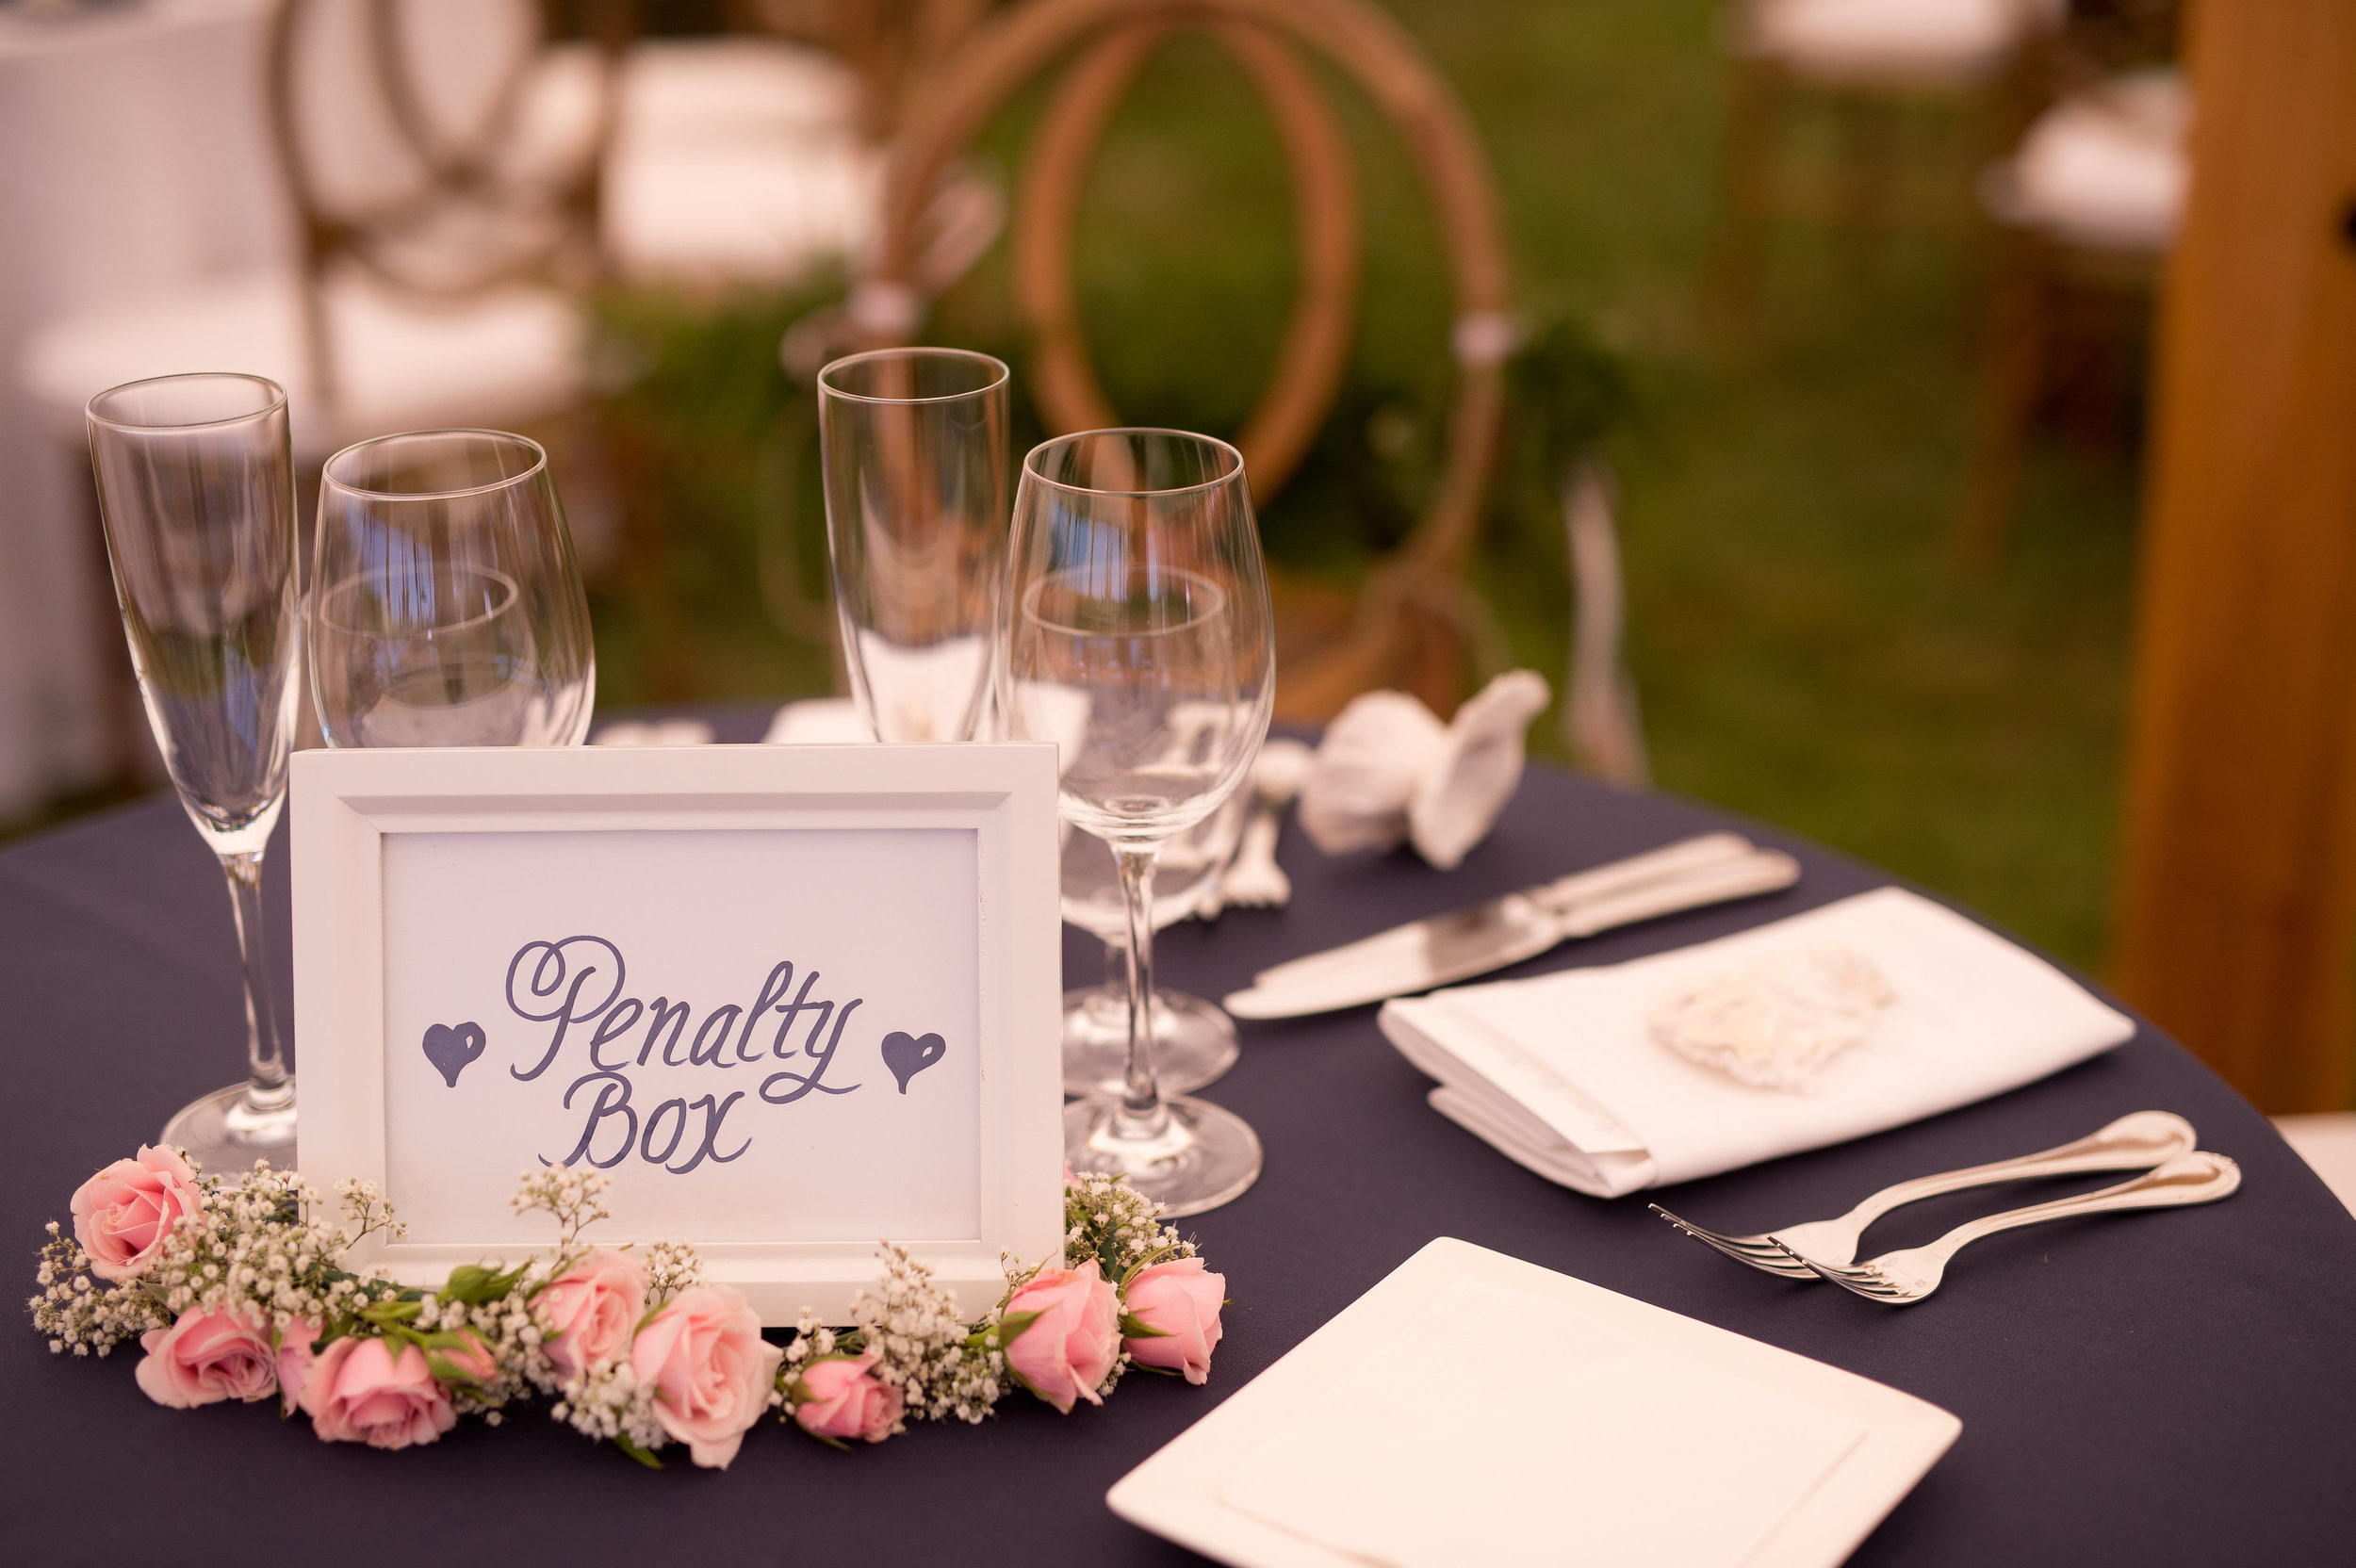 """As avid hockey fans, the bride and groom named tables after NHL teams. The sweetheart table was dubbed the """"Penalty Box"""" and hockey sticks were signed in lieu of a guest book."""